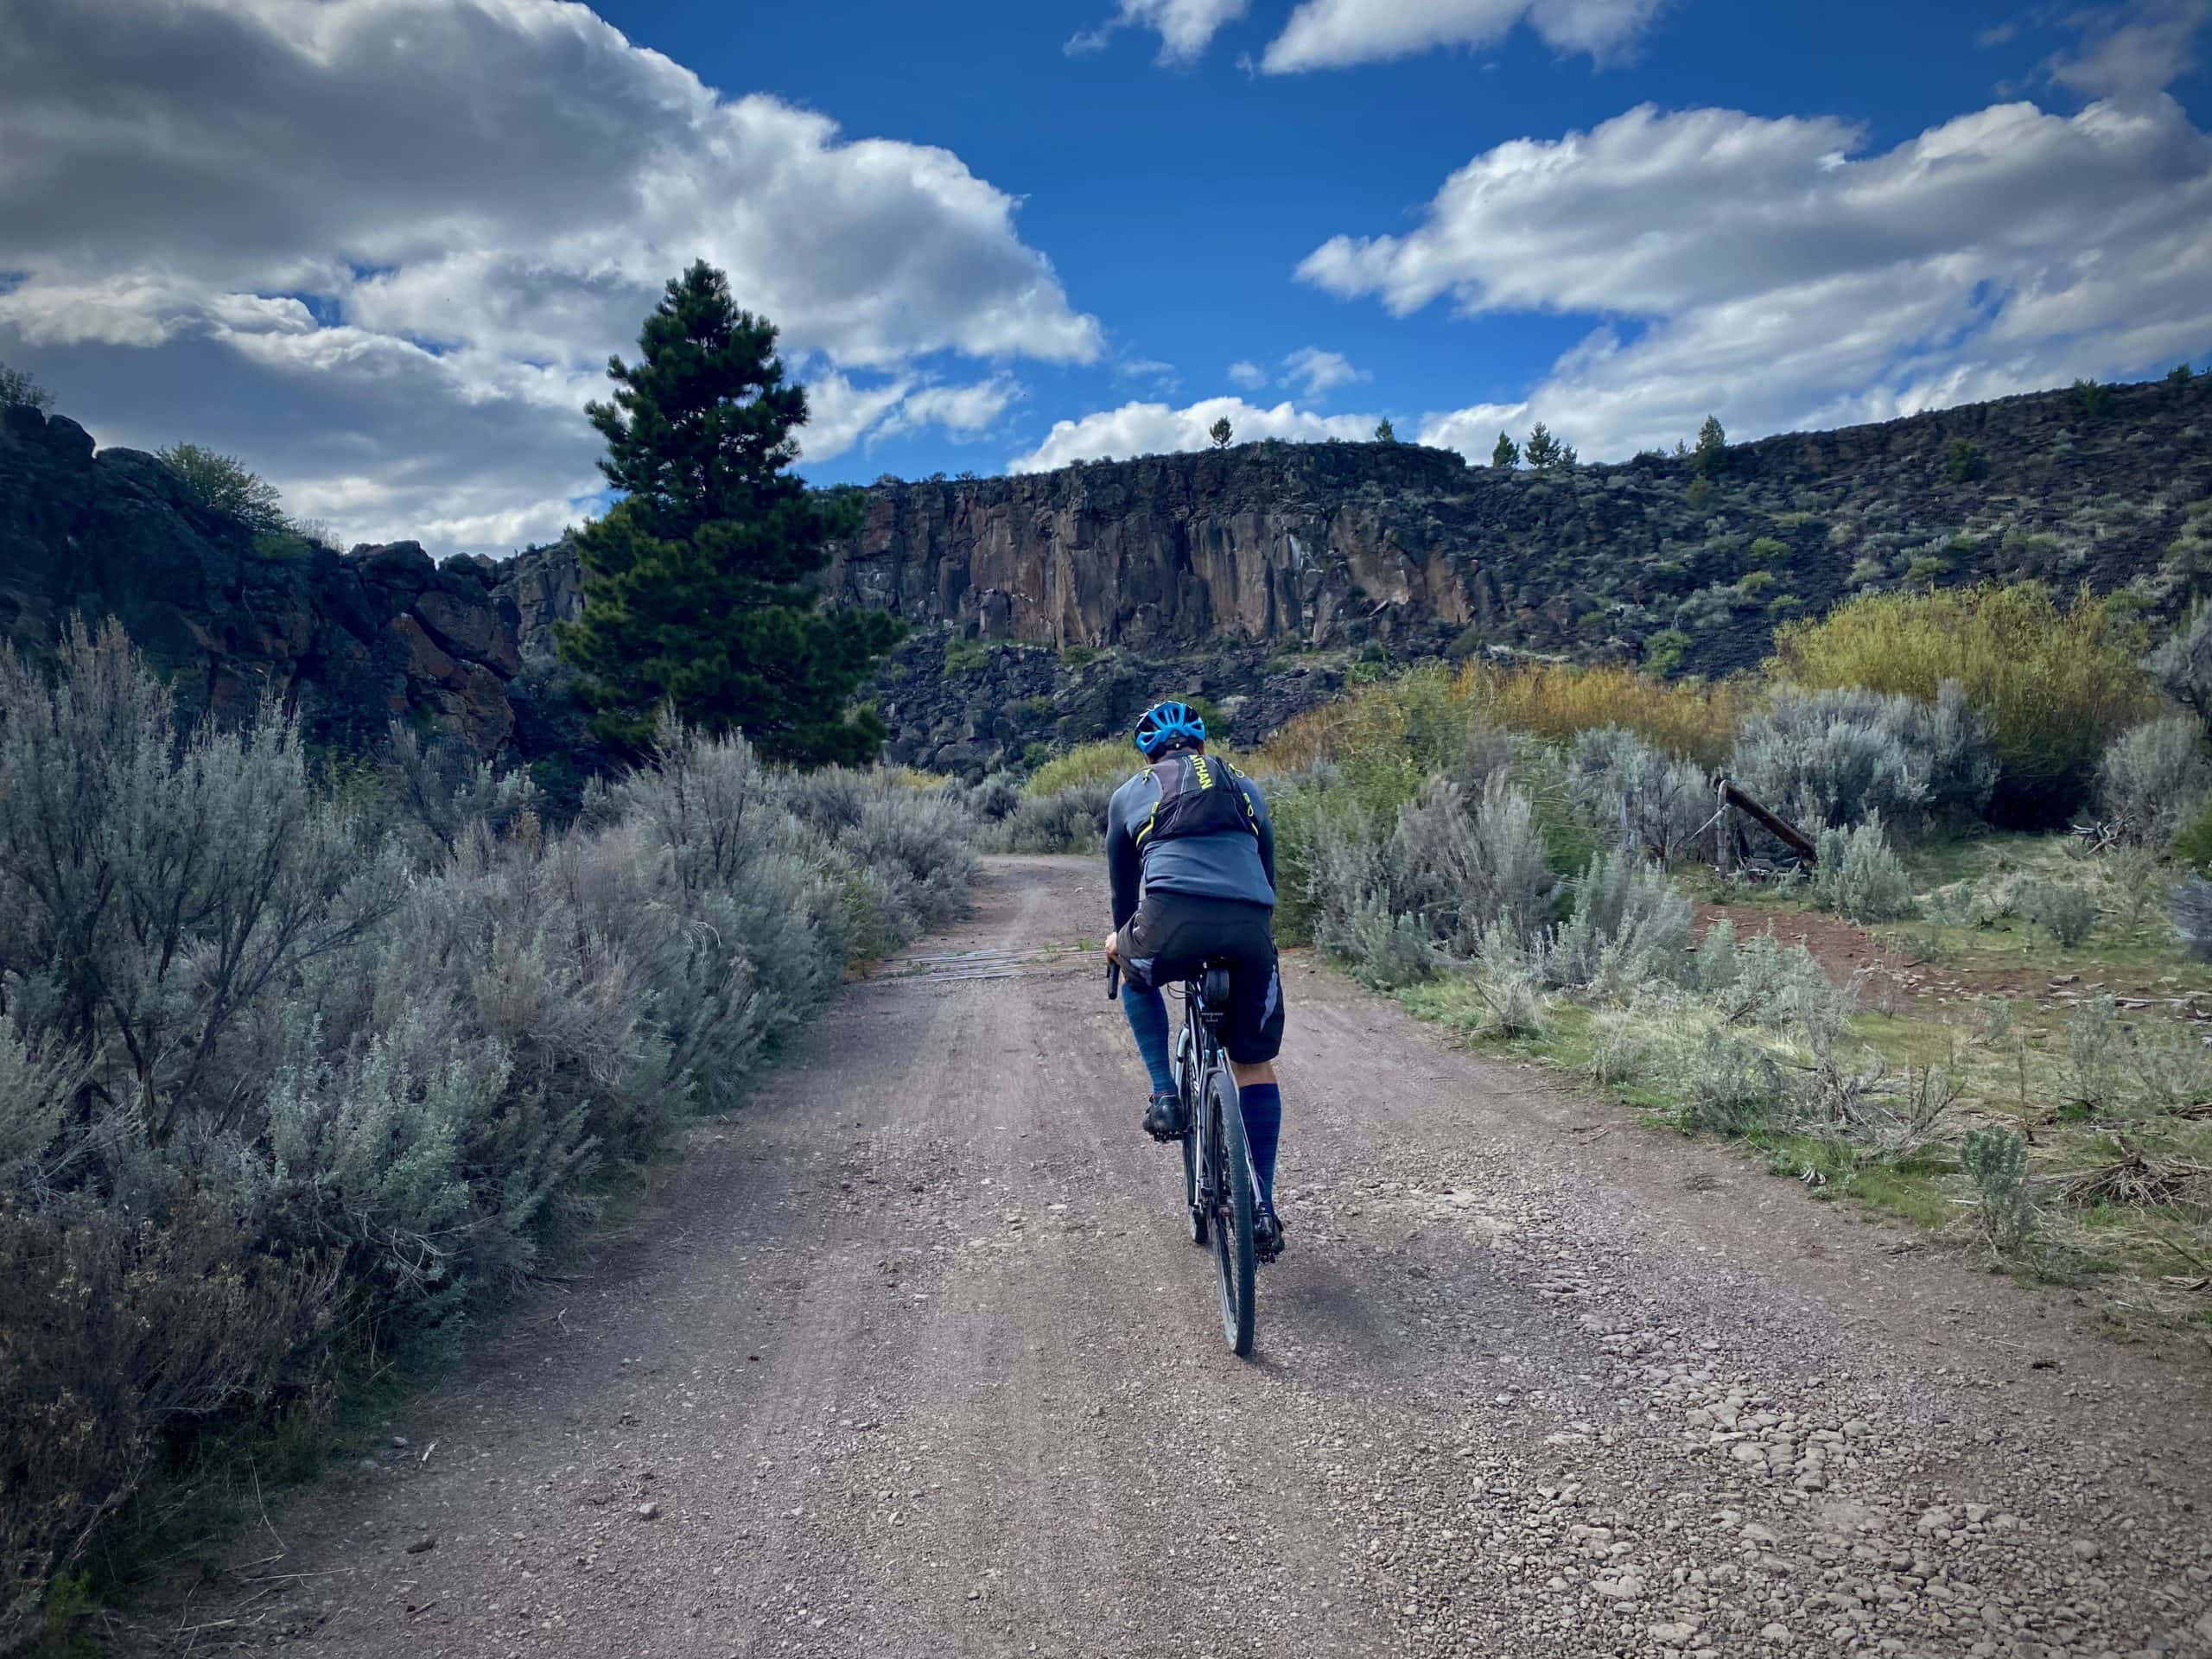 Cyclist approaching the entrance to Egypt canyon near Riley, Oregon.